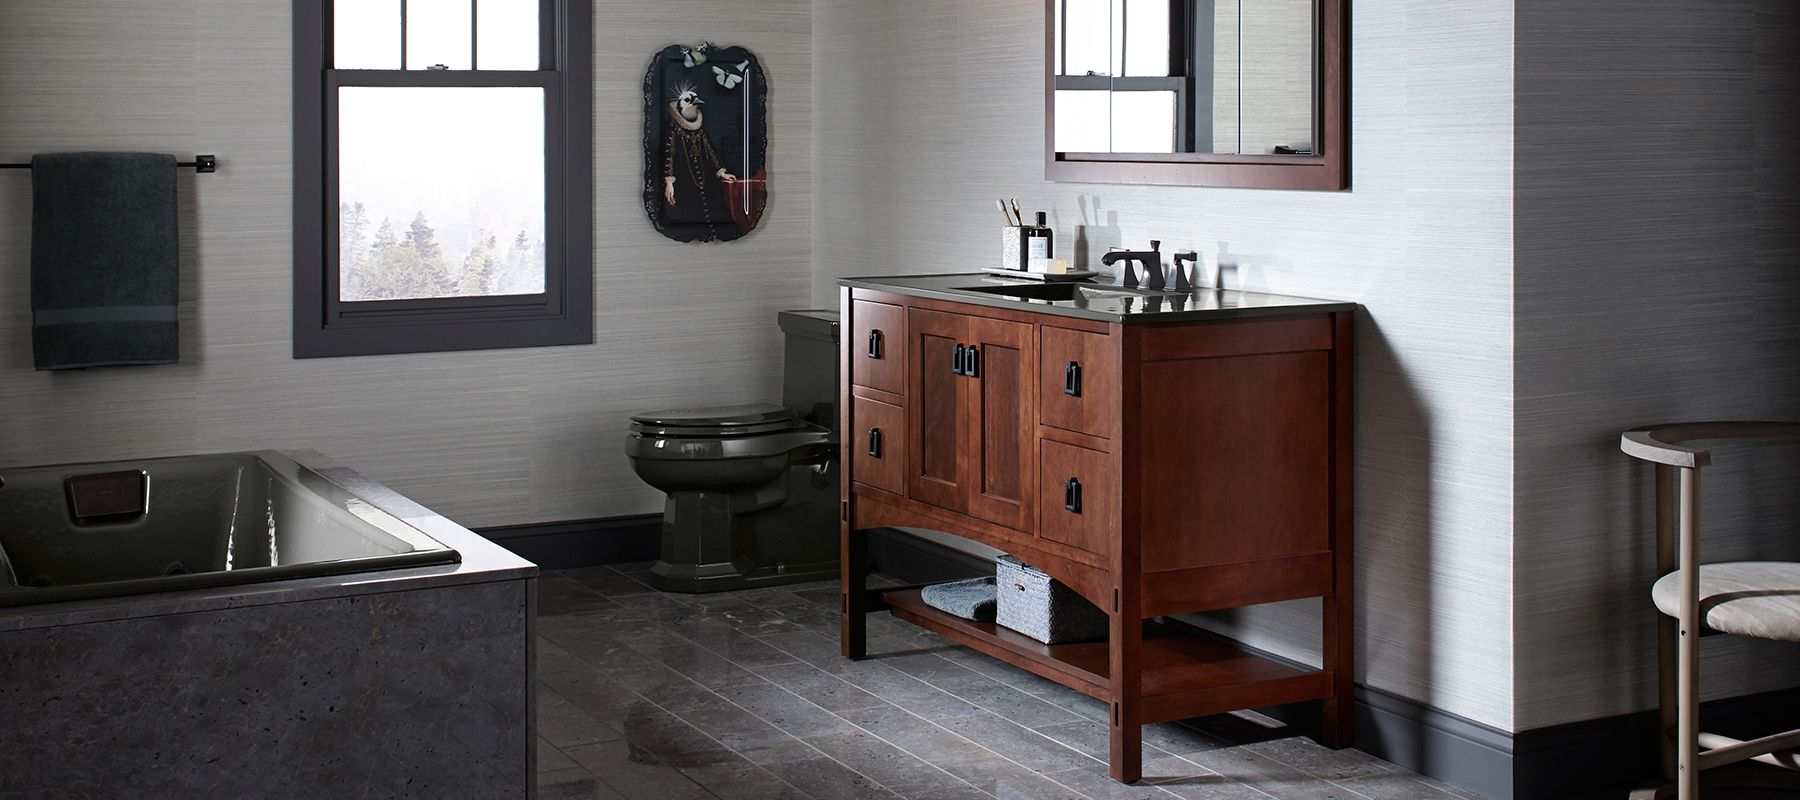 . KOHLER Enameled Cast Iron Bathroom Sinks   Bathroom   KOHLER